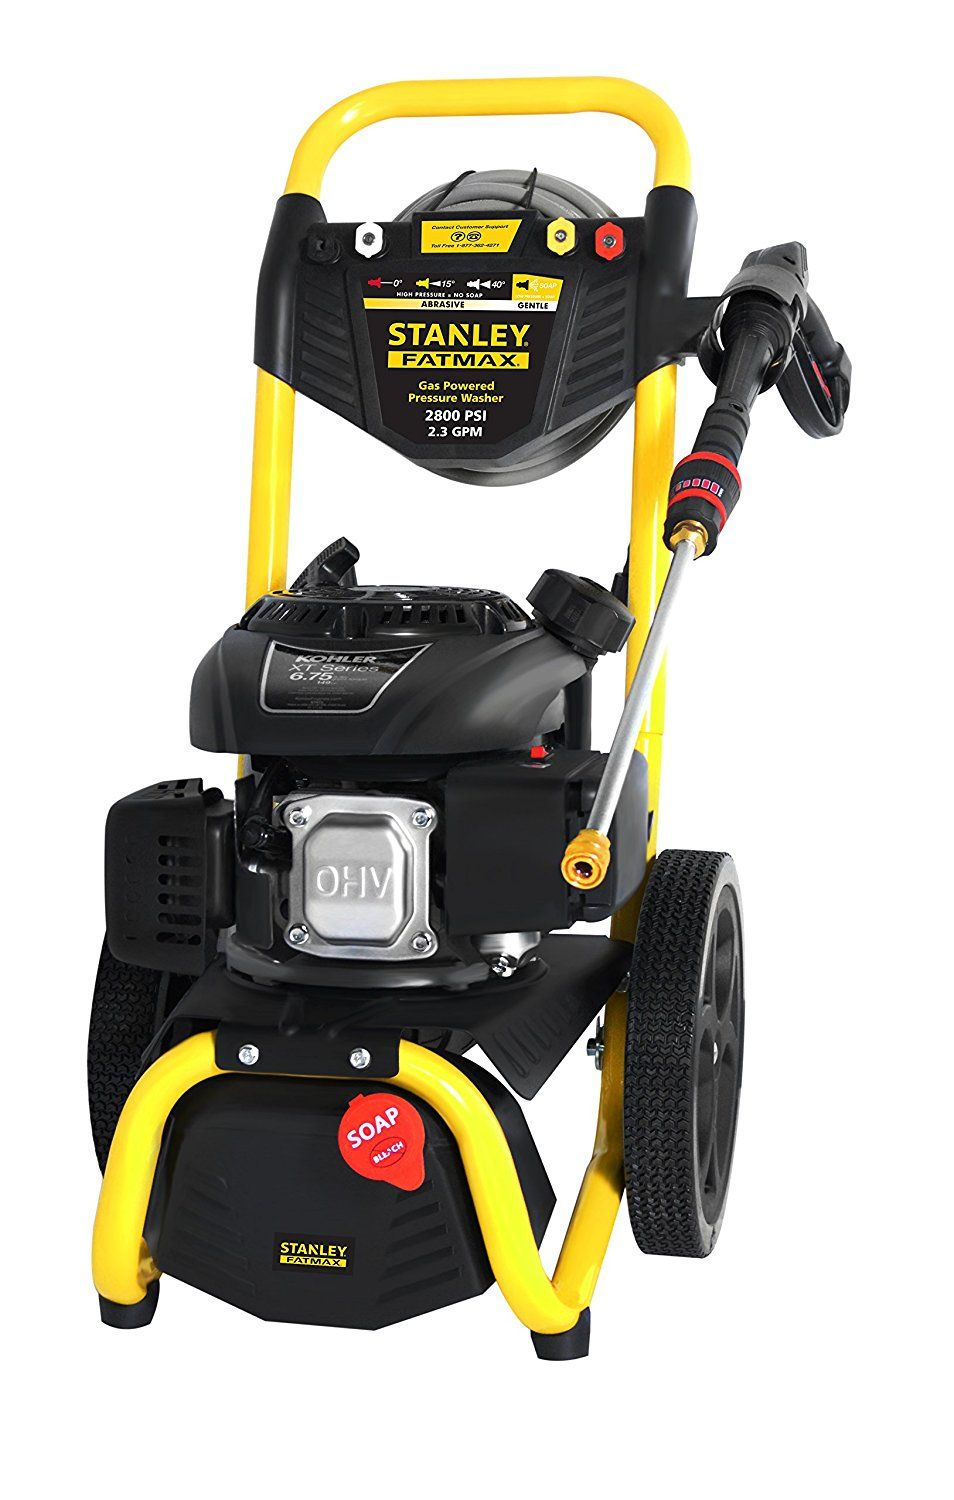 small resolution of pressure washer karcher pressure washer karcher k2 pressure washers electric pressure washer jet wash power washers karcher power washer karcher pressure